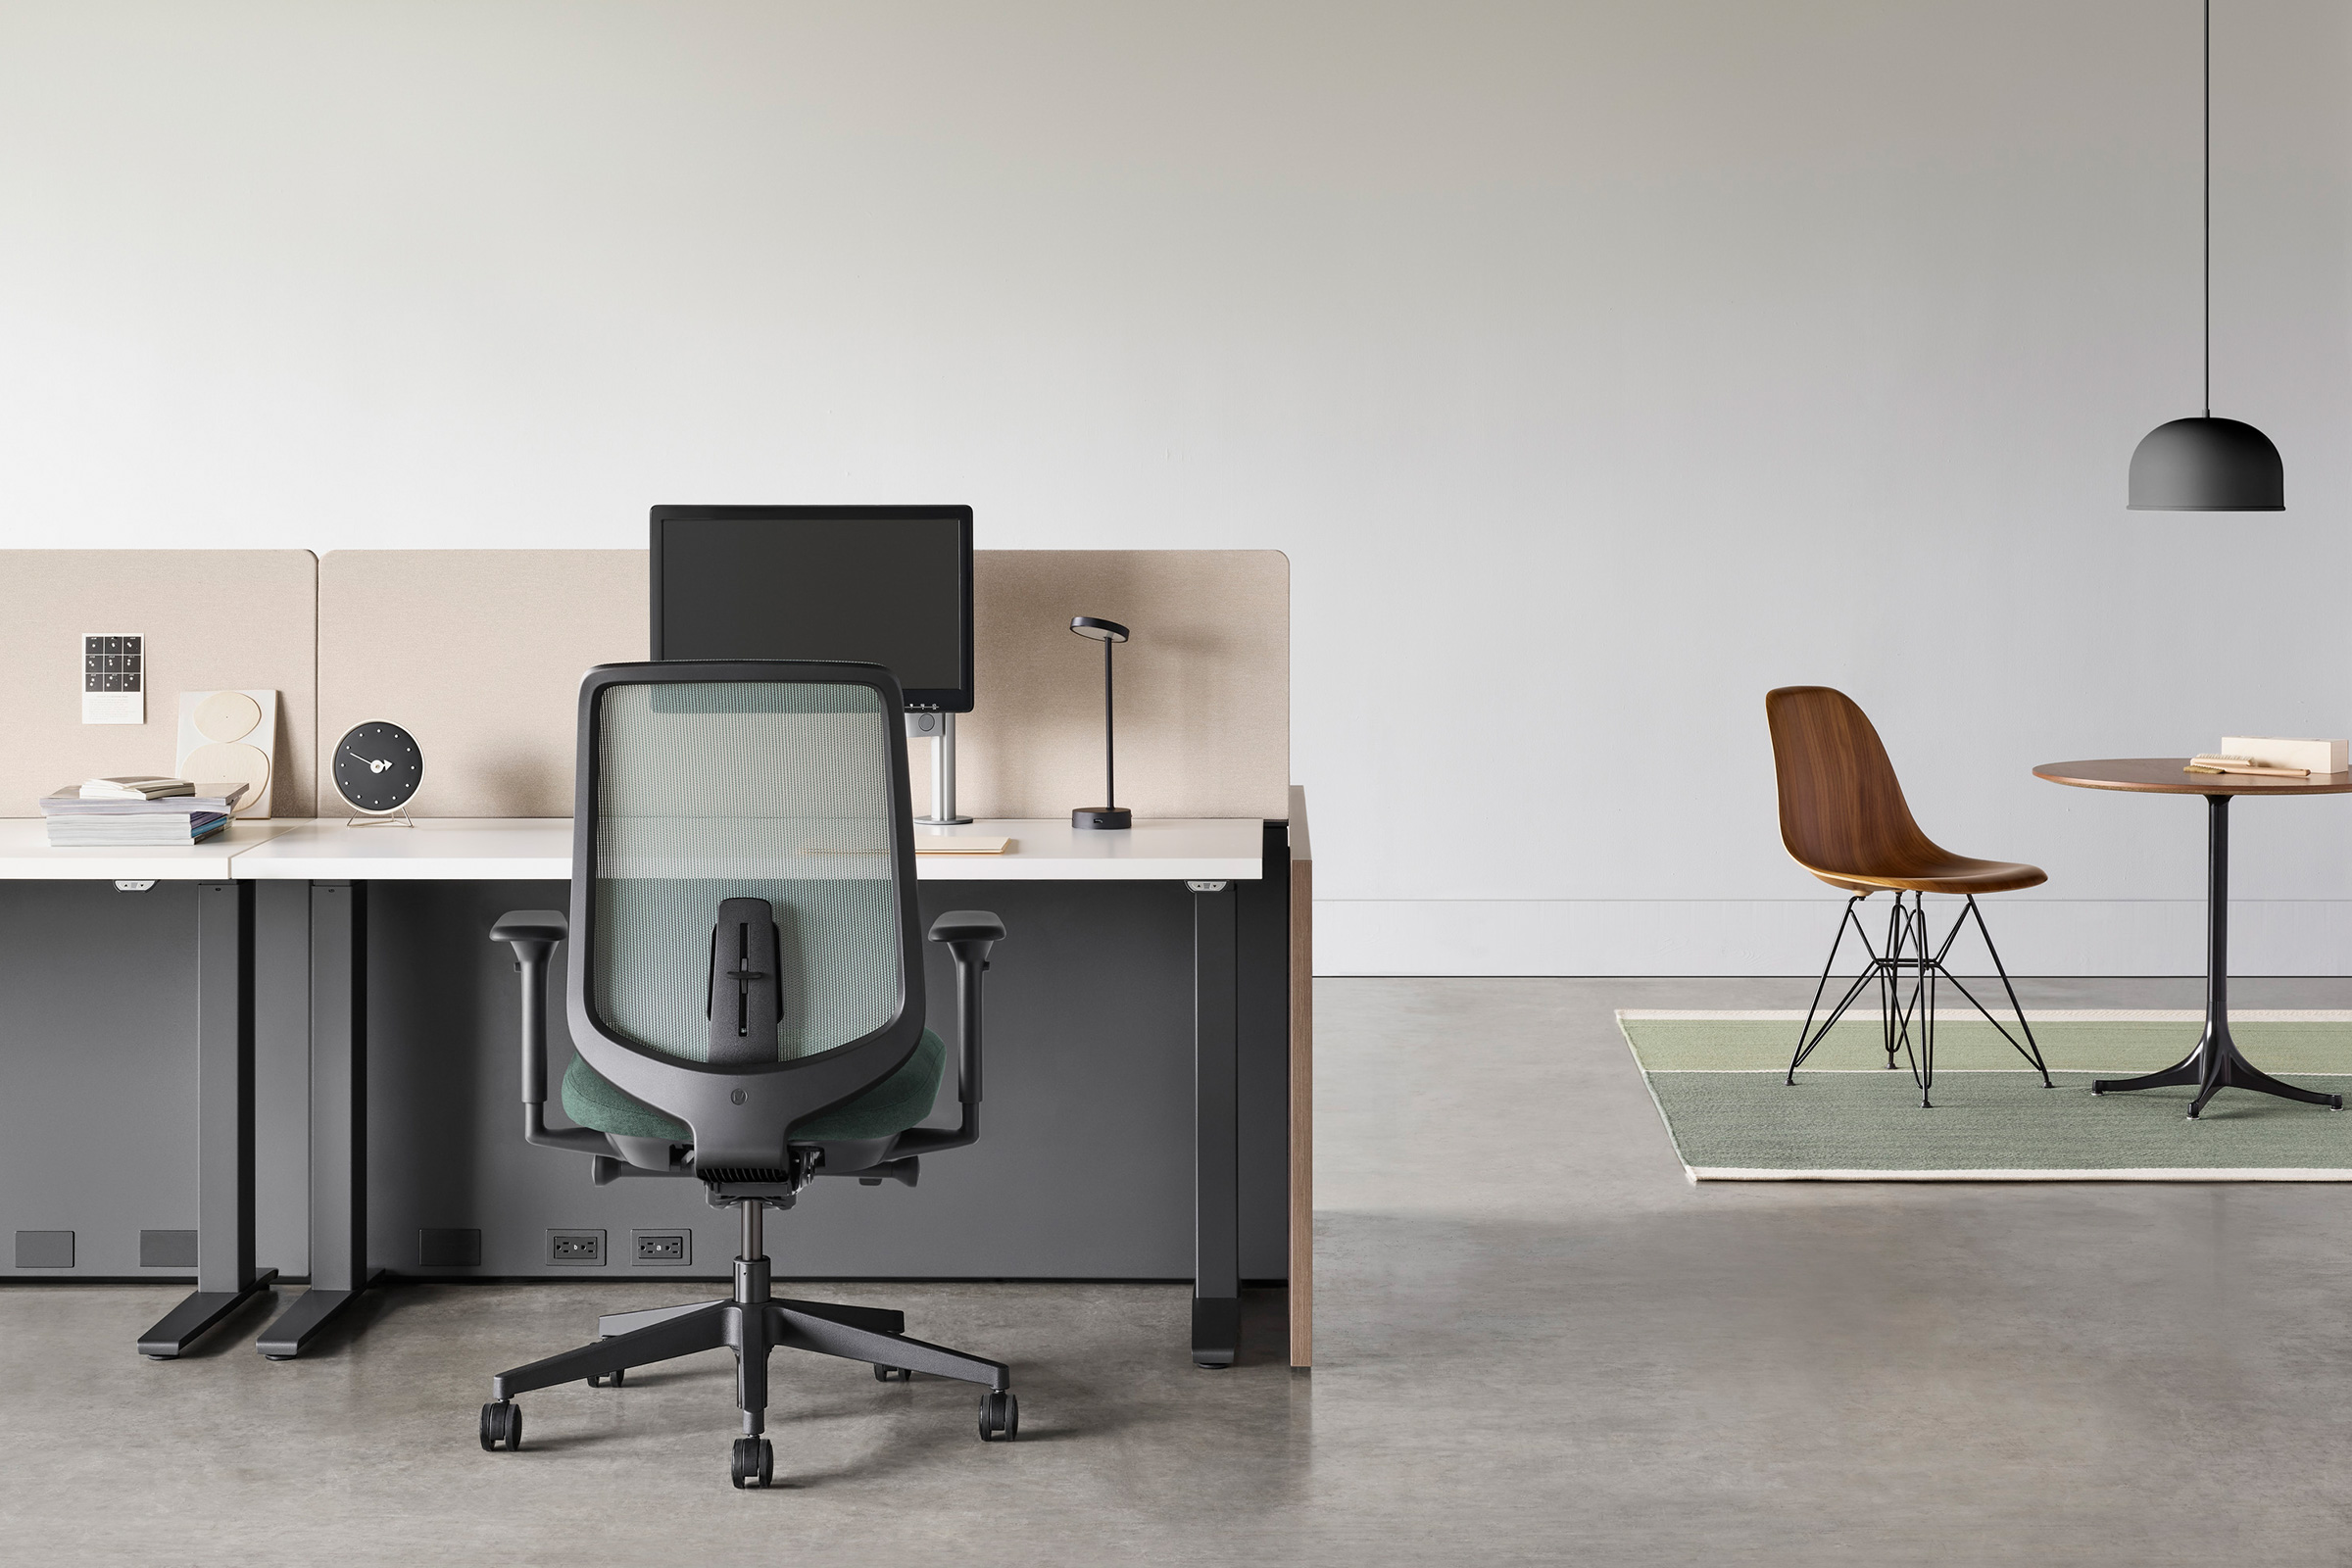 5 Ergonomic Chairs To Improve Your Office Space - HEY GENTS - Herman Miller Task Chair